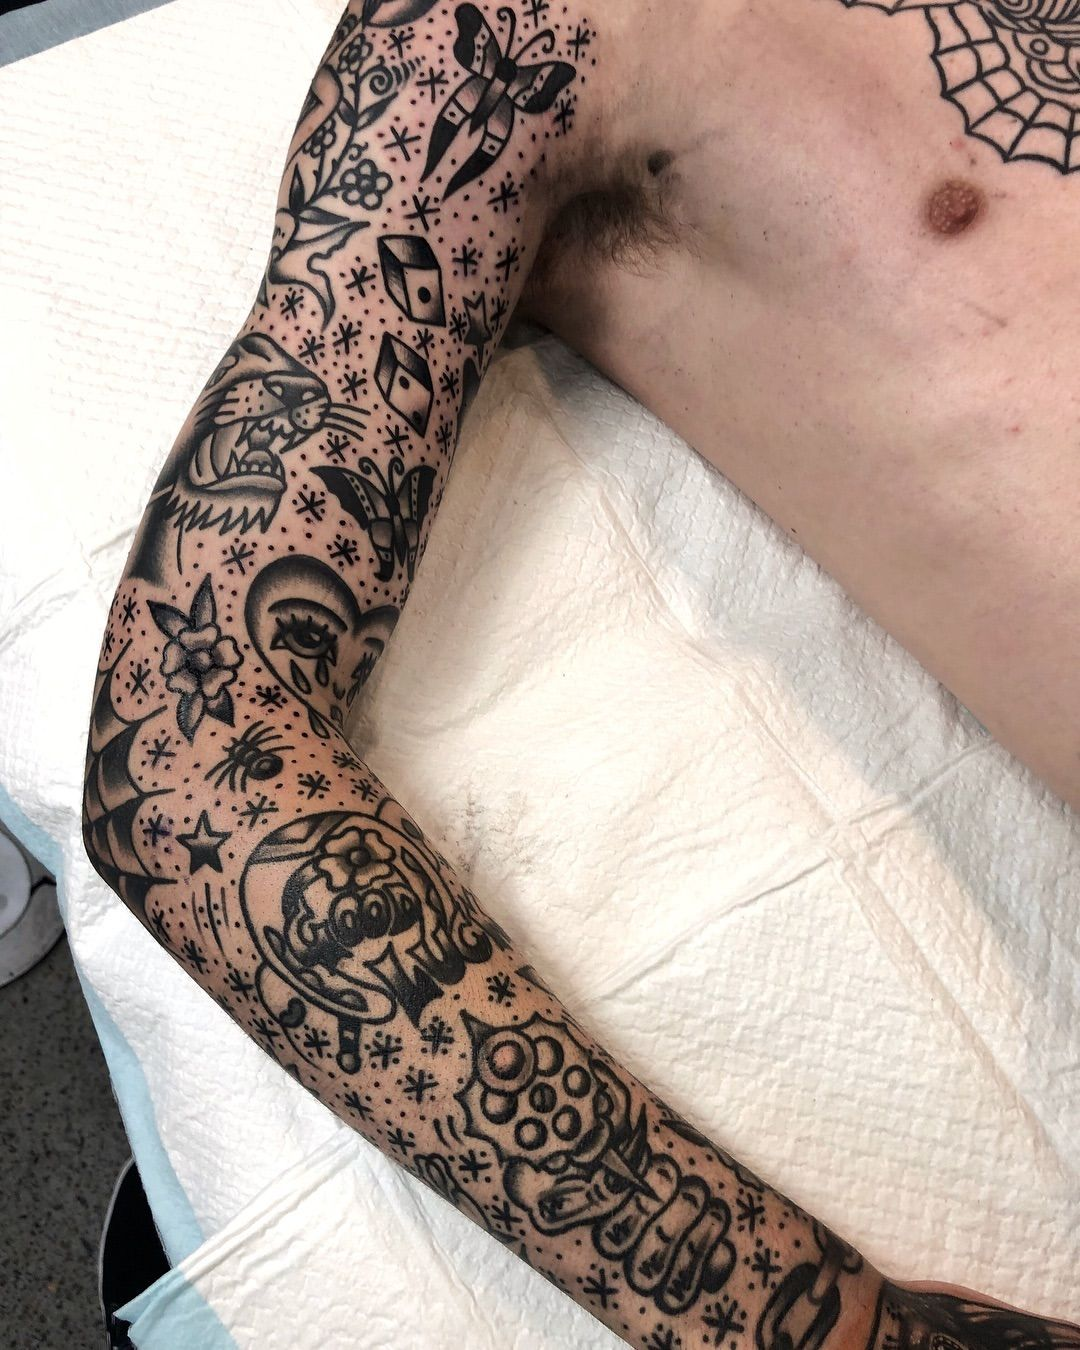 Finished The Darling Parlour Some Fresh And Healed Swipe Across For The Video Thanks For The Commitment Angus Old School Tattoo Sleeve Sleeve Tattoos Tattoos